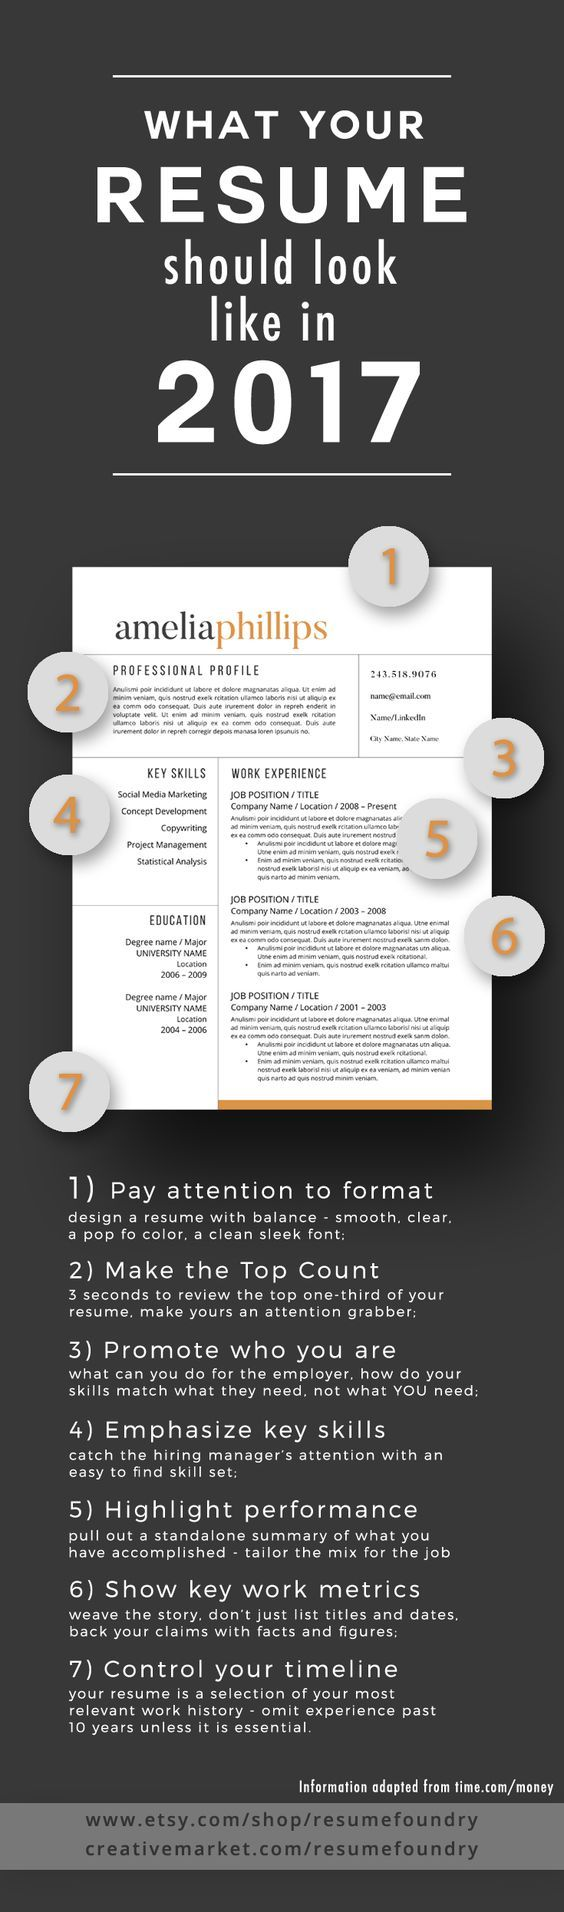 7 Tips To Transform Your Resume To 2017 Check Out The Article At Time Com Money Resume Tips Helpful Hints Career Advice